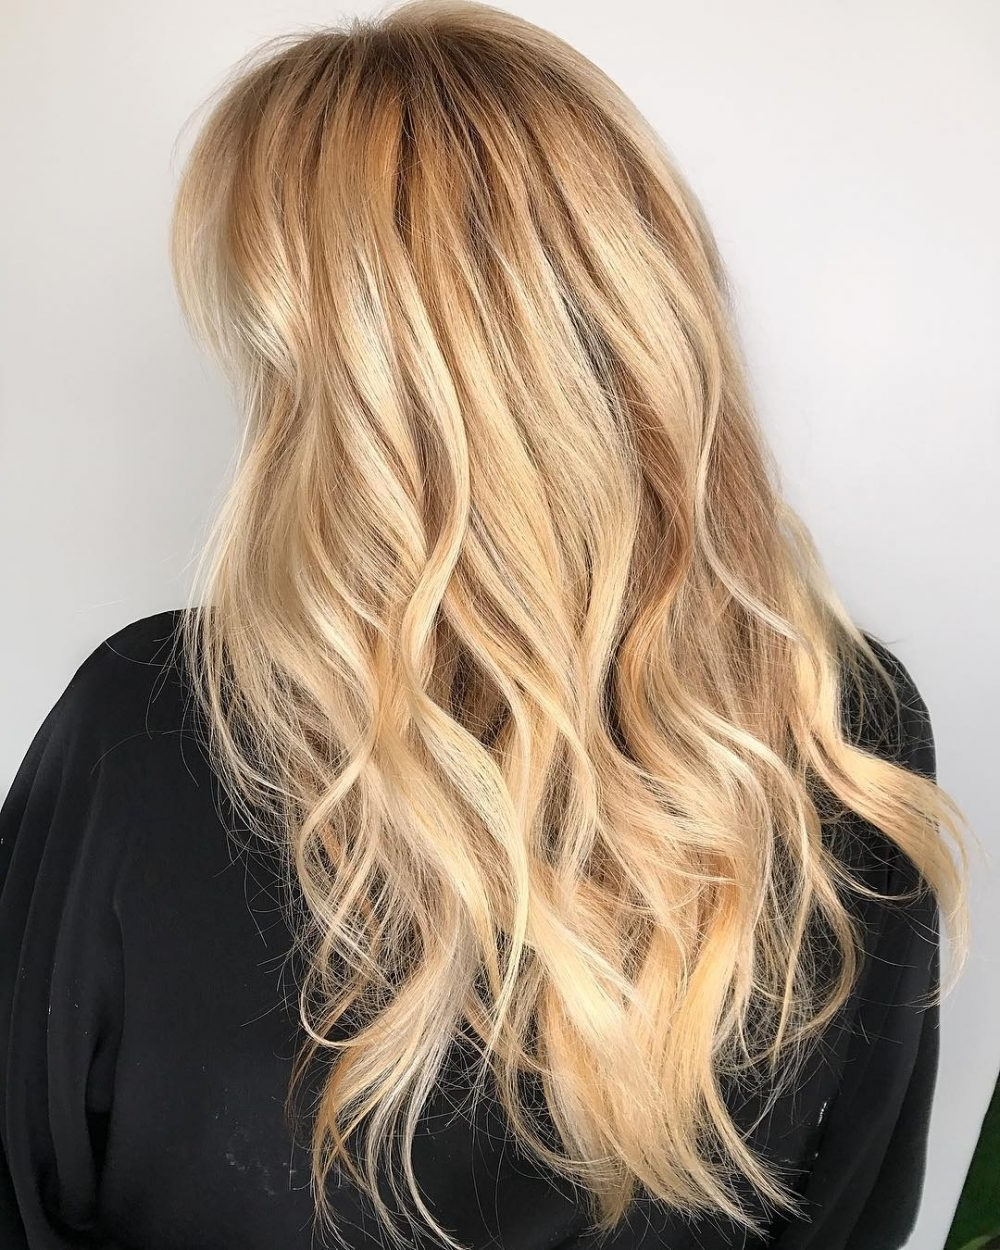 Newest No Fuss Dirty Blonde Hairstyles Throughout 30 Top Long Blonde Hair Ideas – Bombshell Alert! (View 16 of 20)